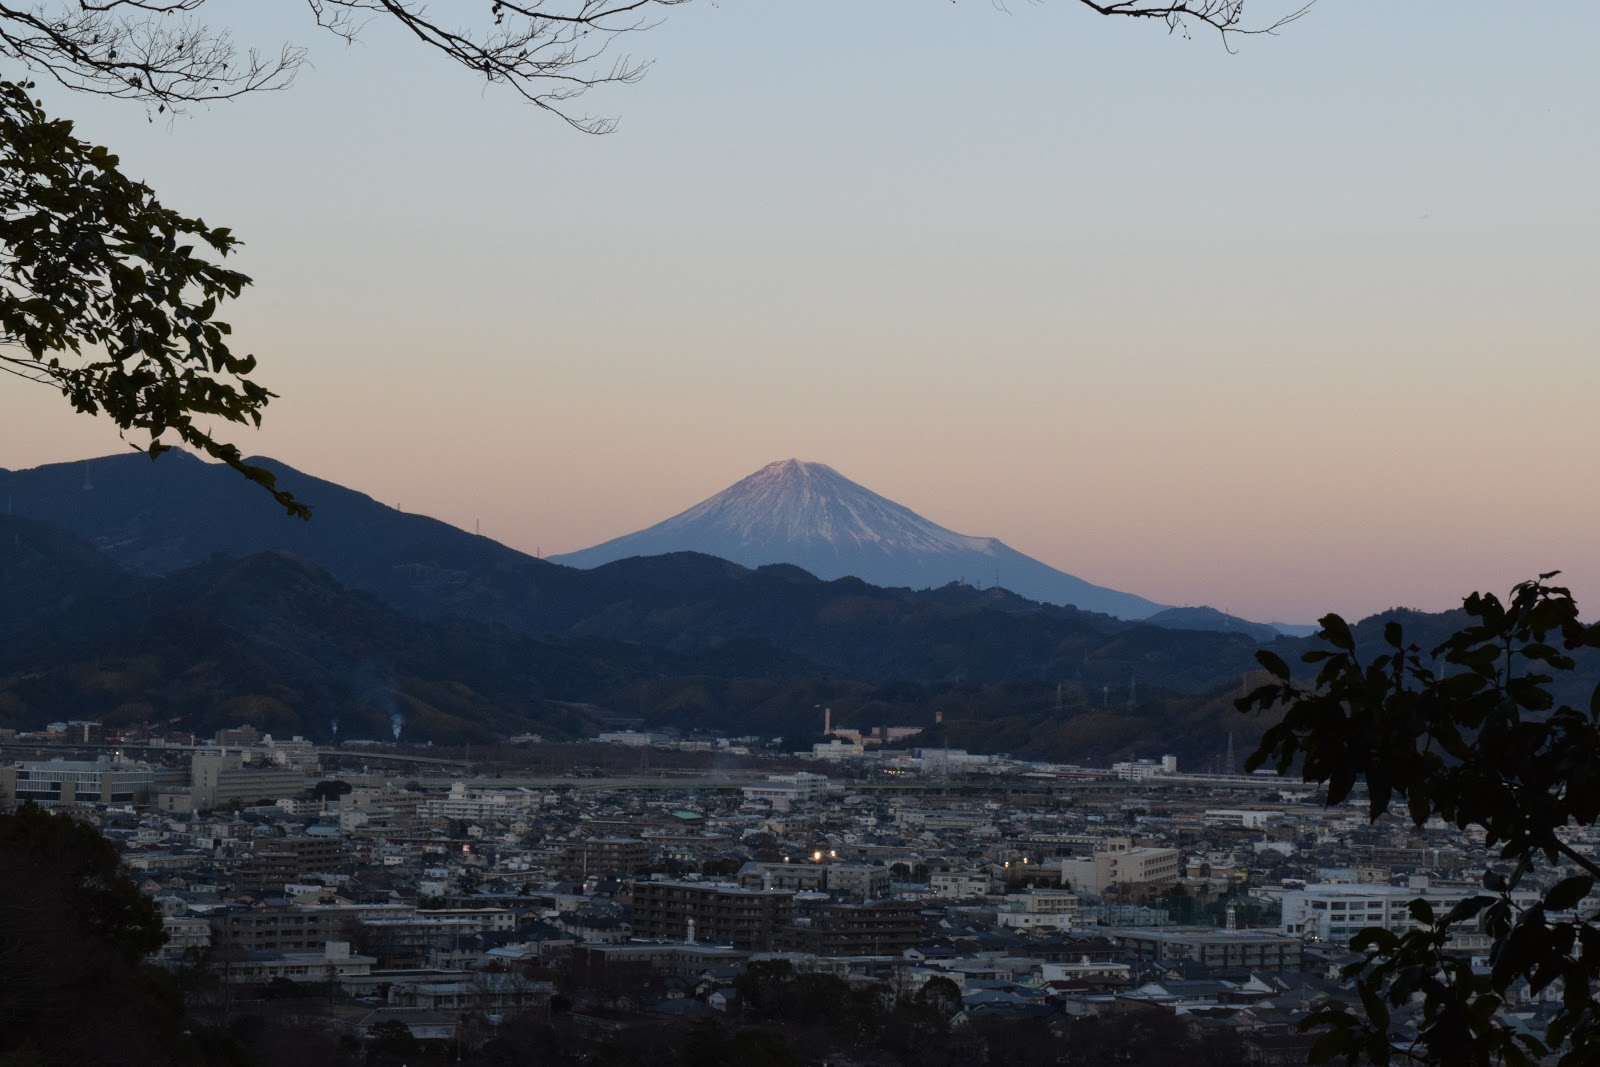 Mount Fuji as seen from the mountain behind Sengen Jinja, shizuoka city